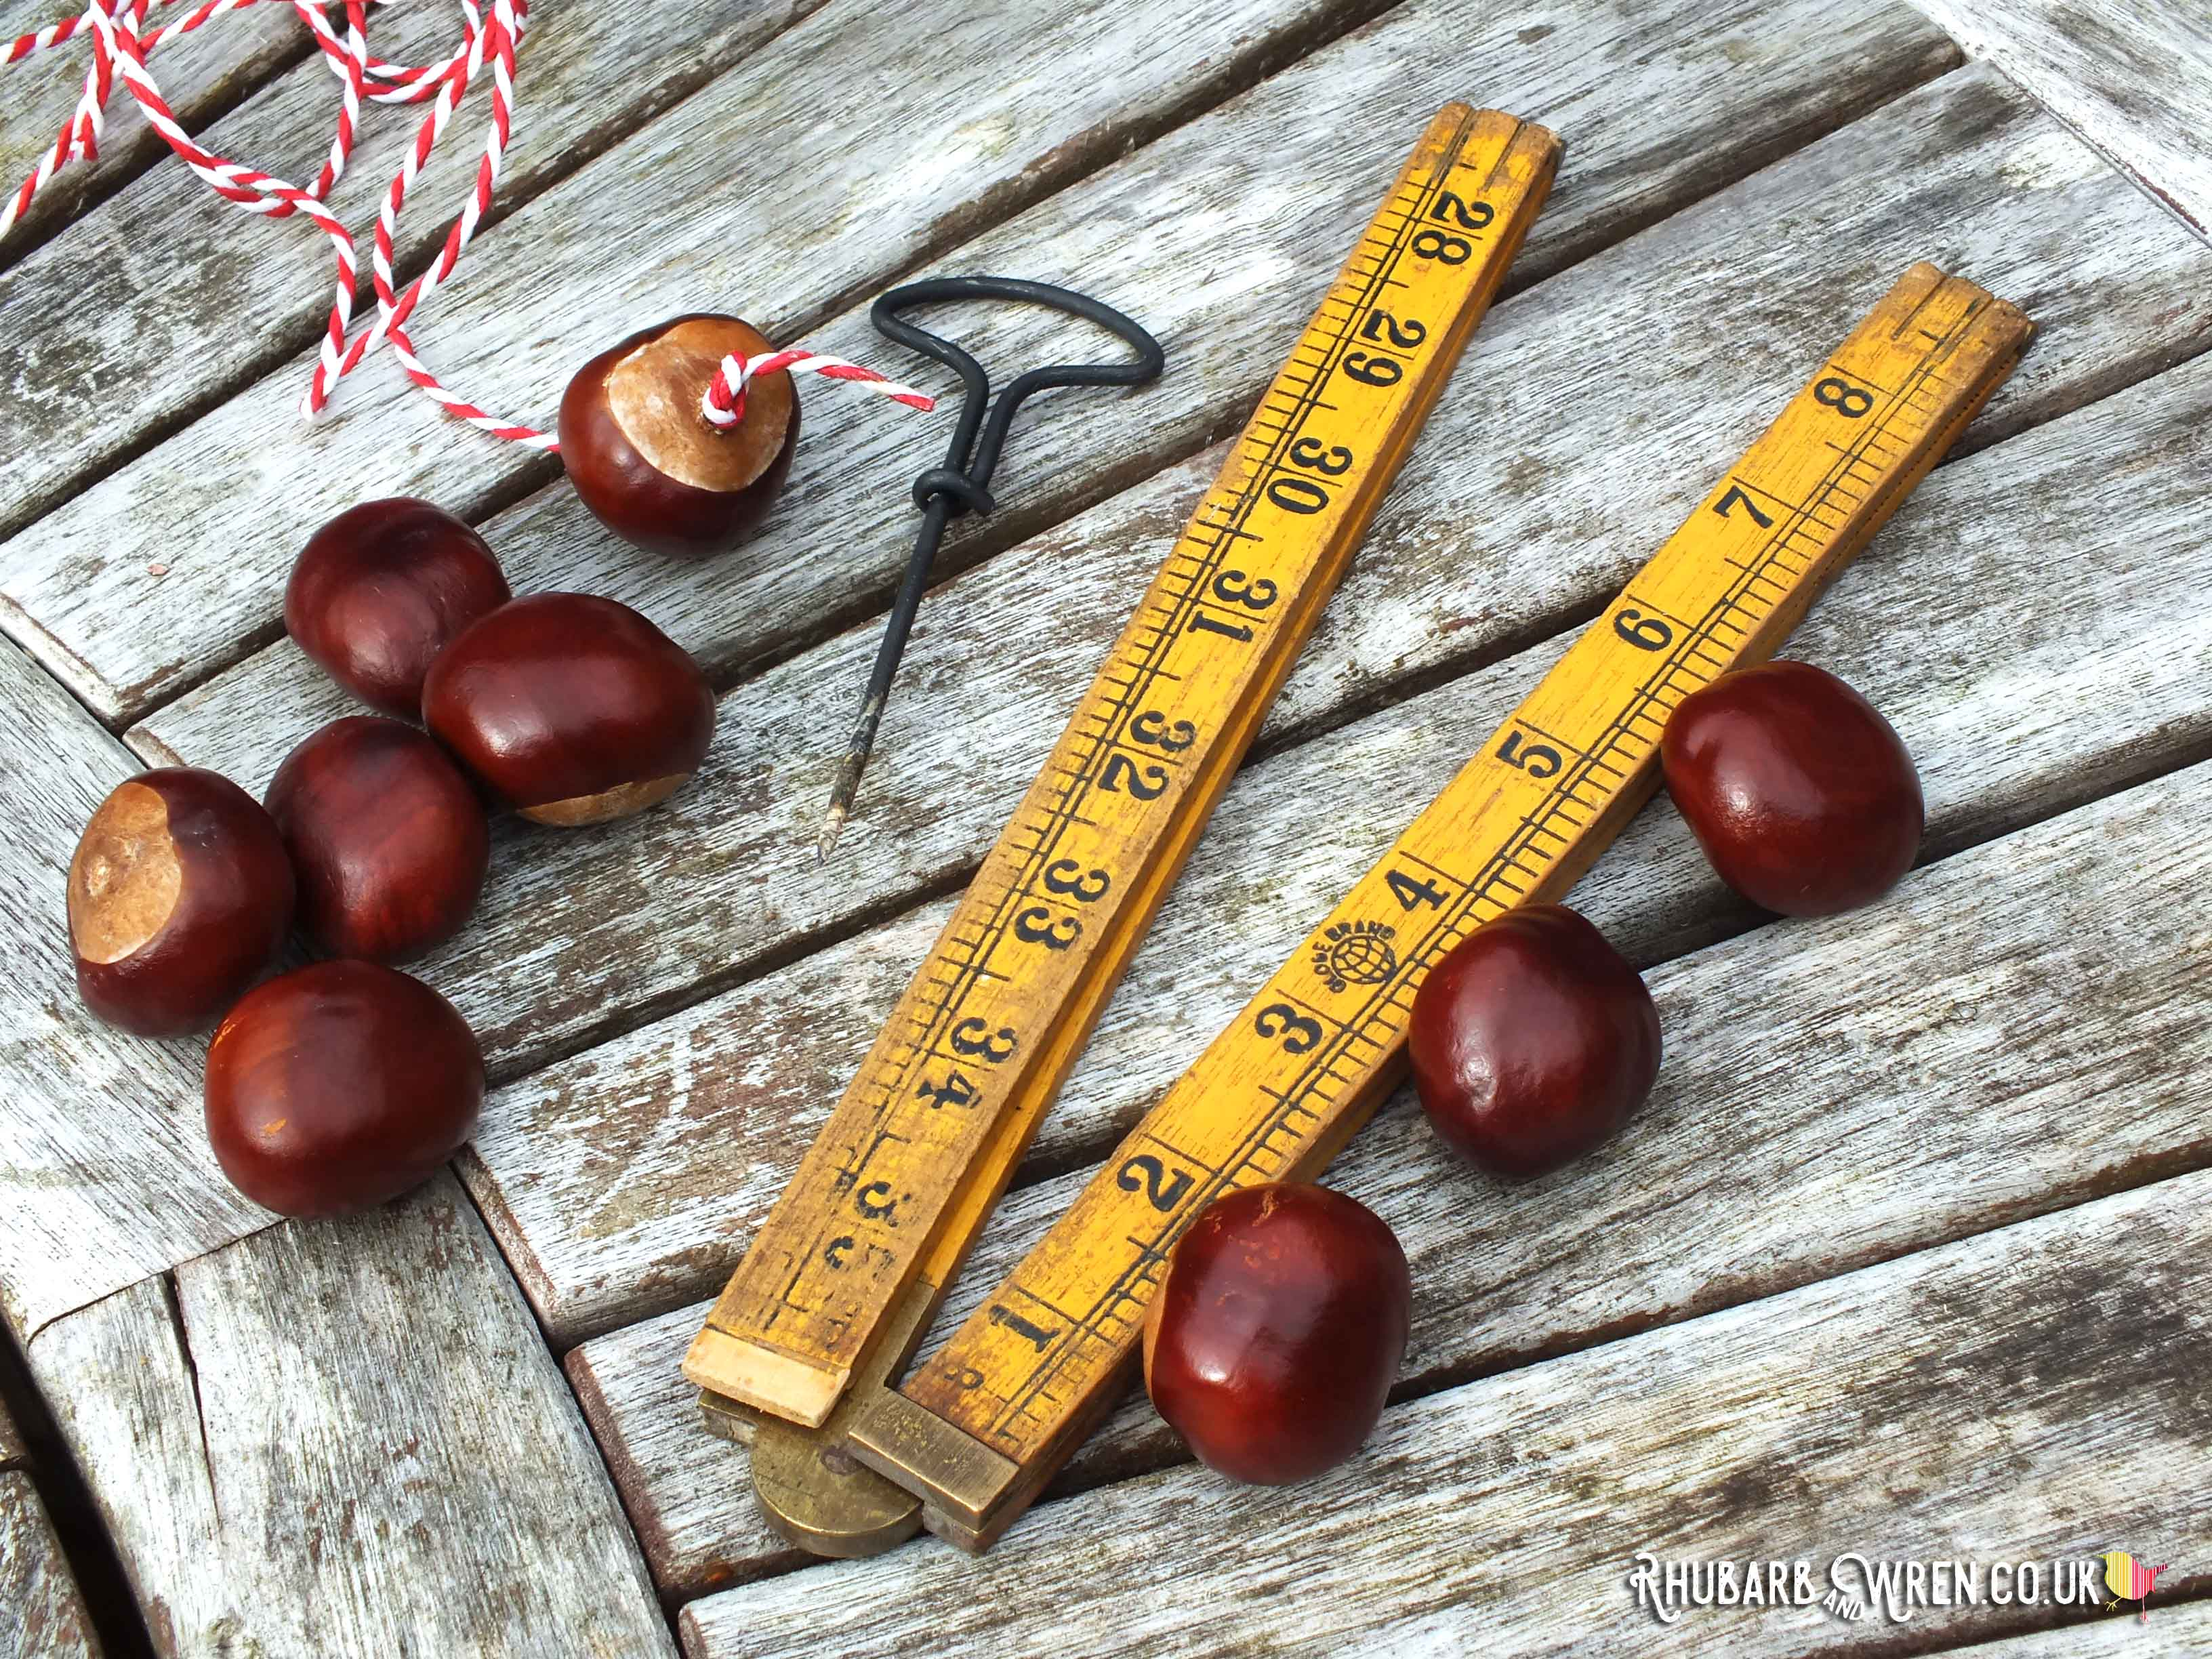 conkers scattered on table with hand drill and folding ruler